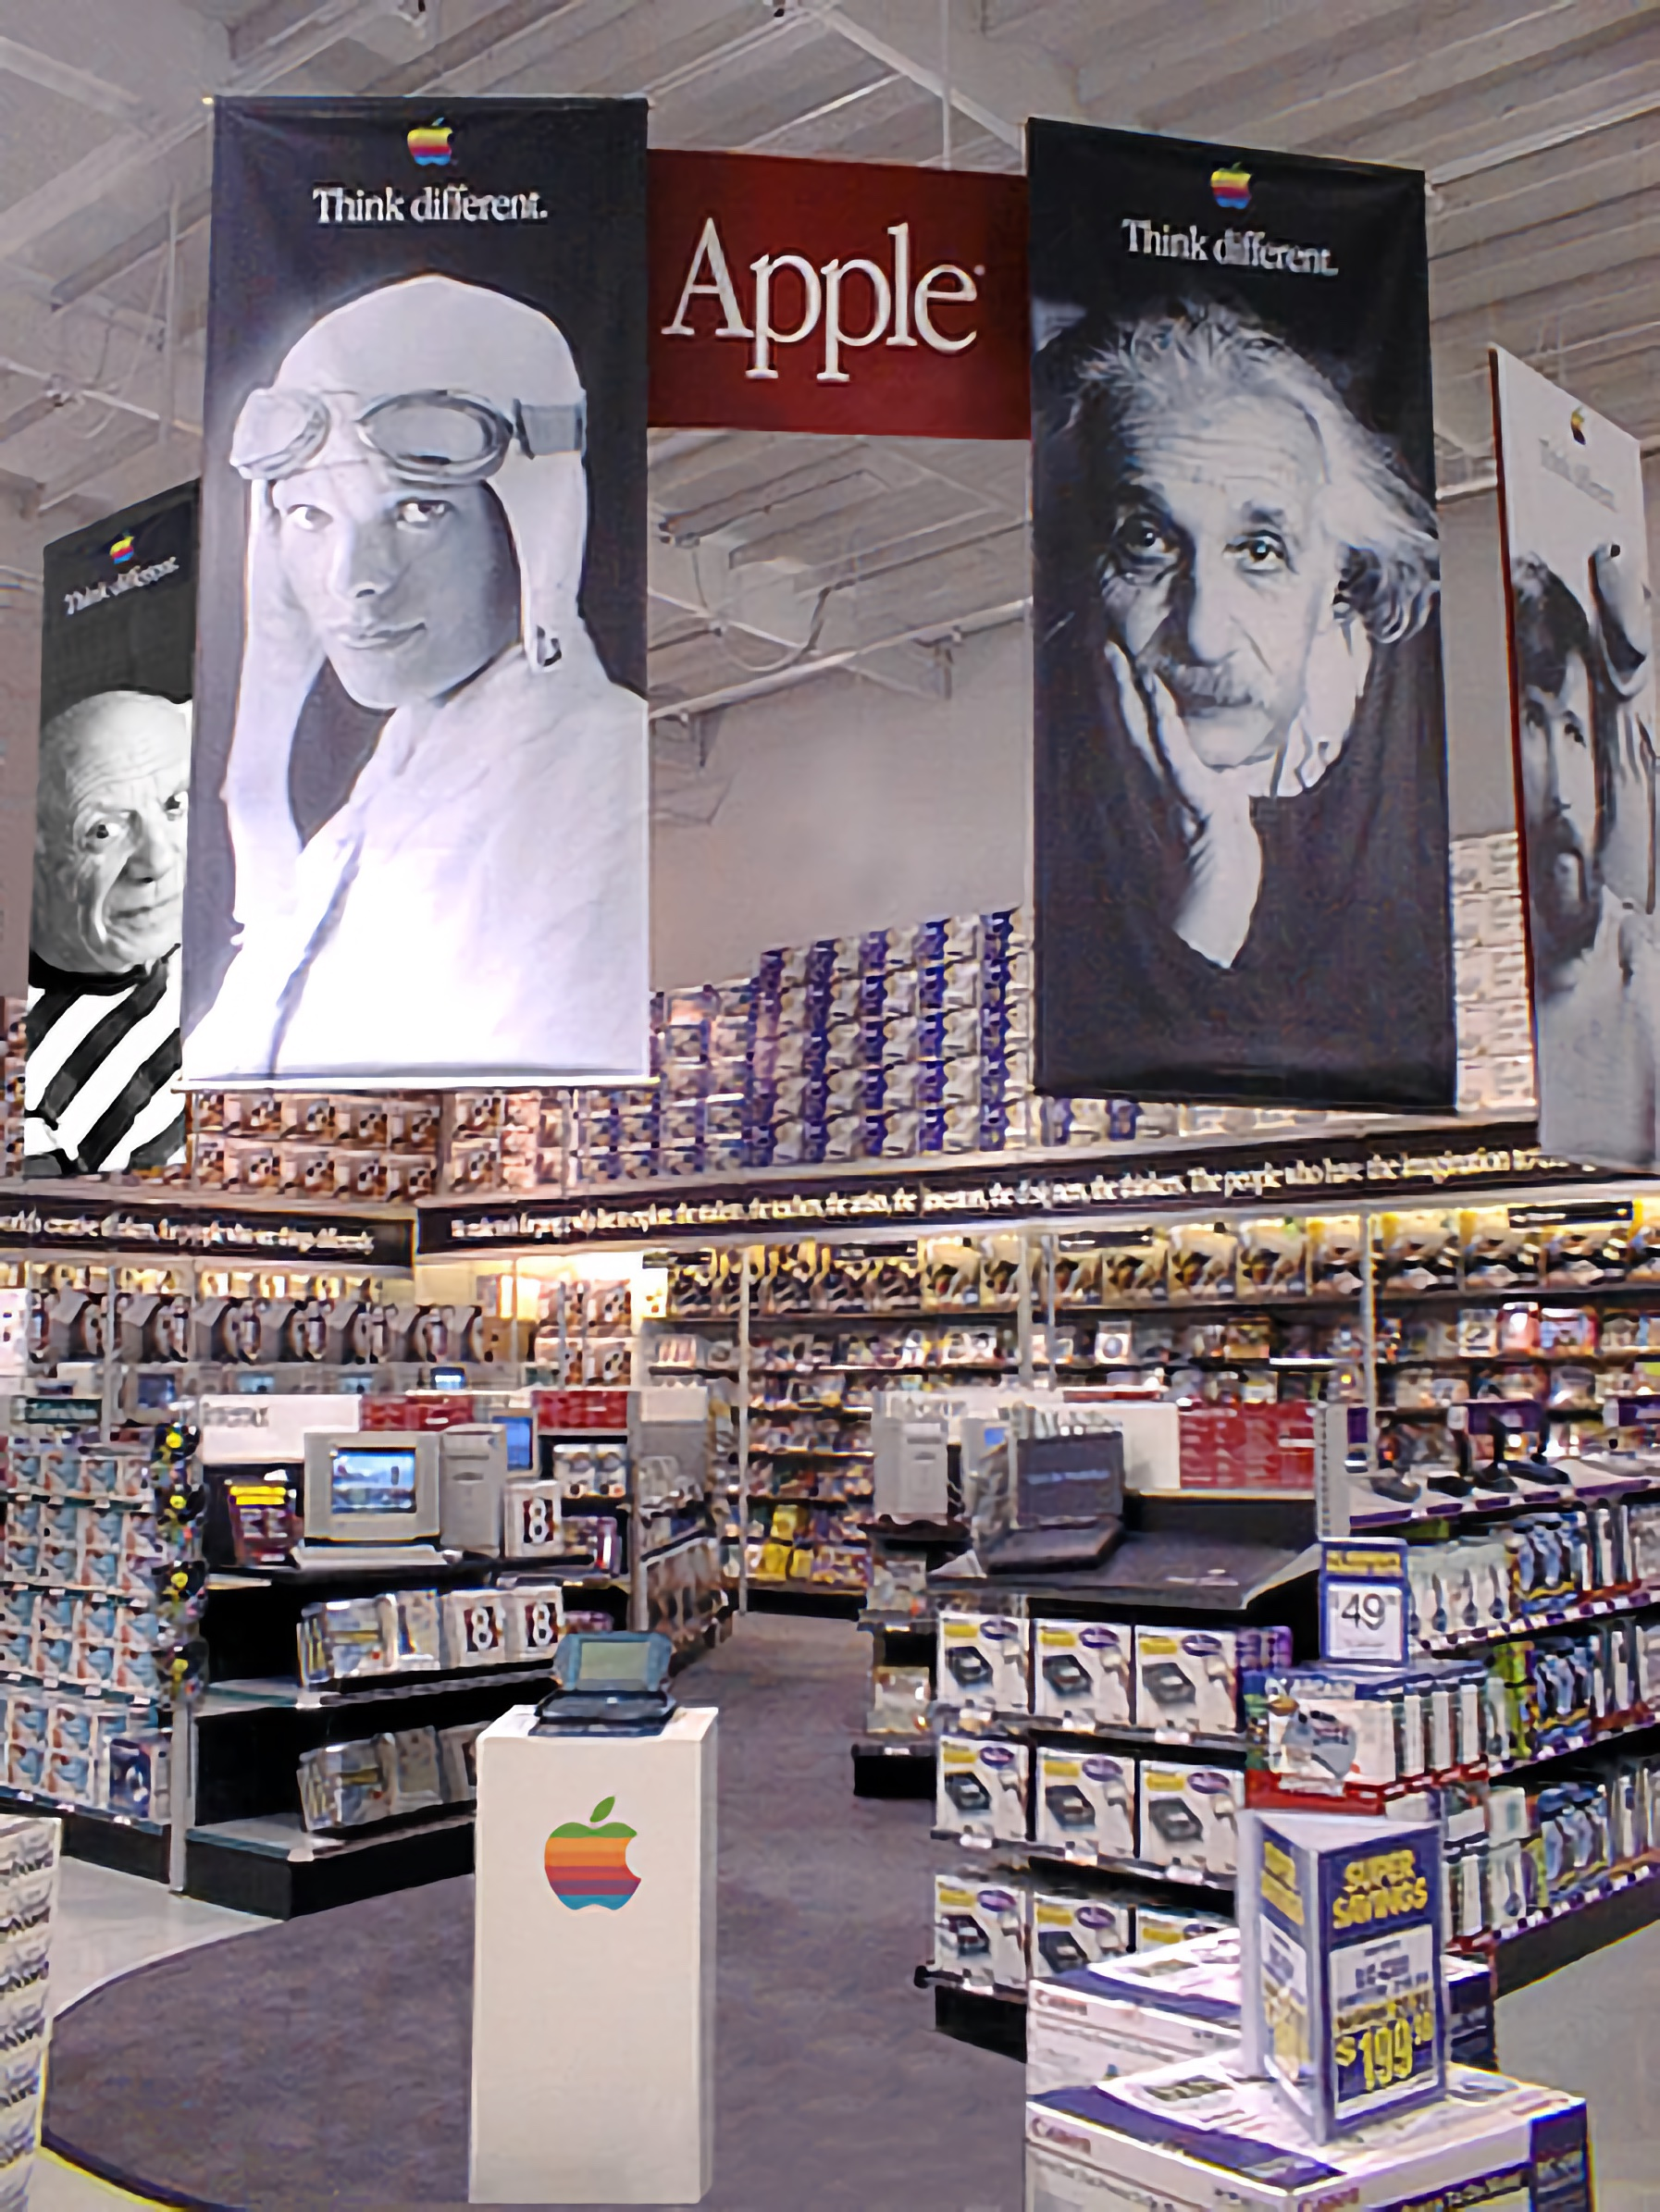 The Apple store within a store concept at CompUSA in Pleasanton, California.